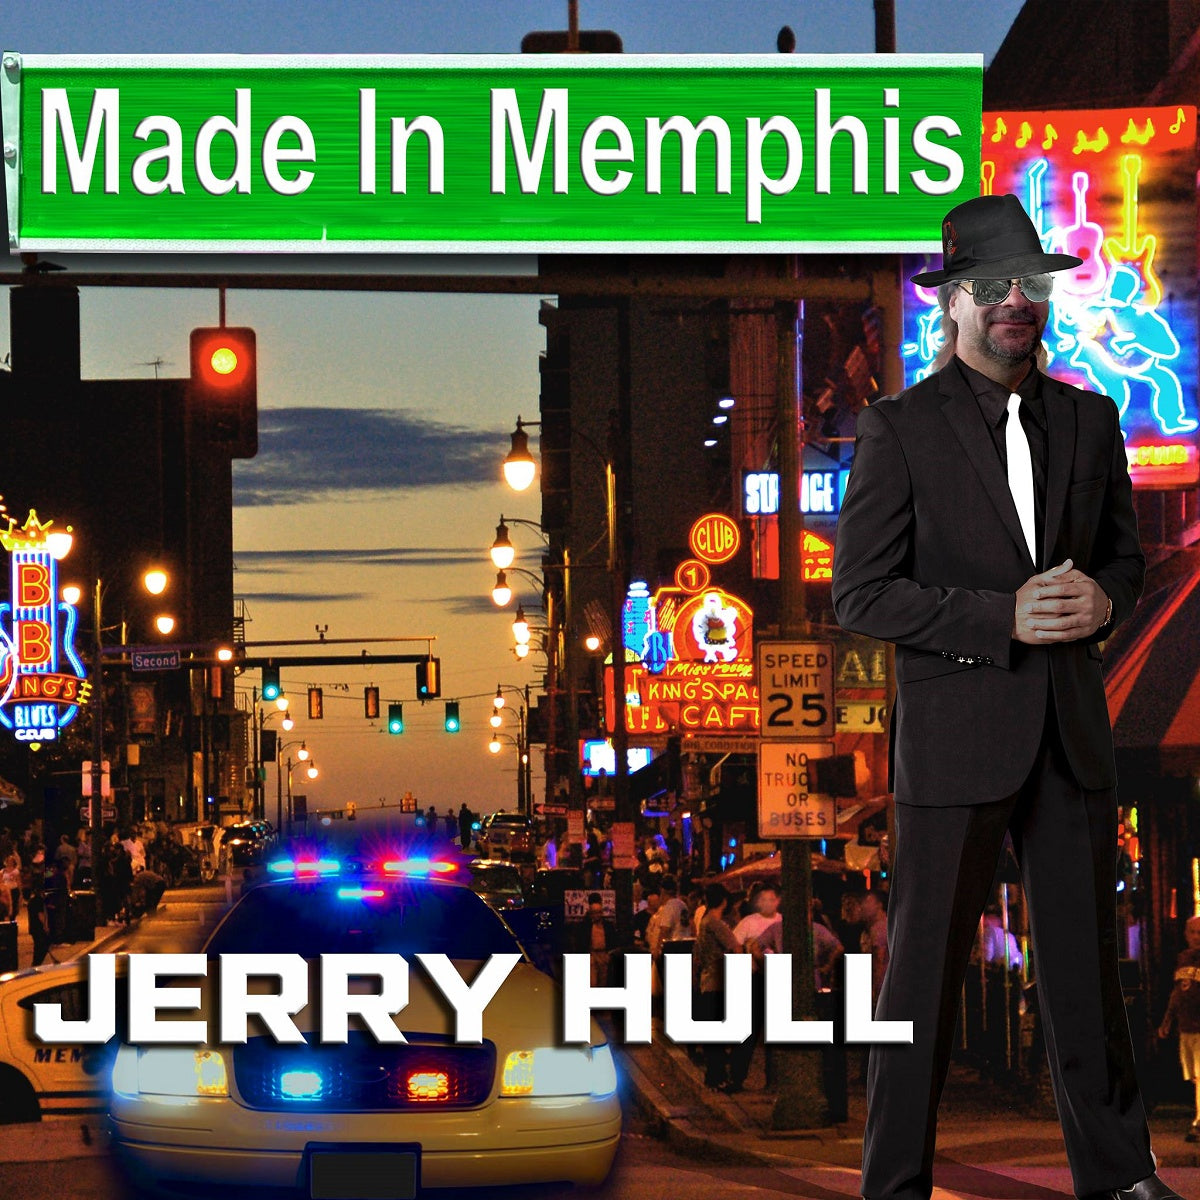 Jerry Hull – 'Made in Memphis'